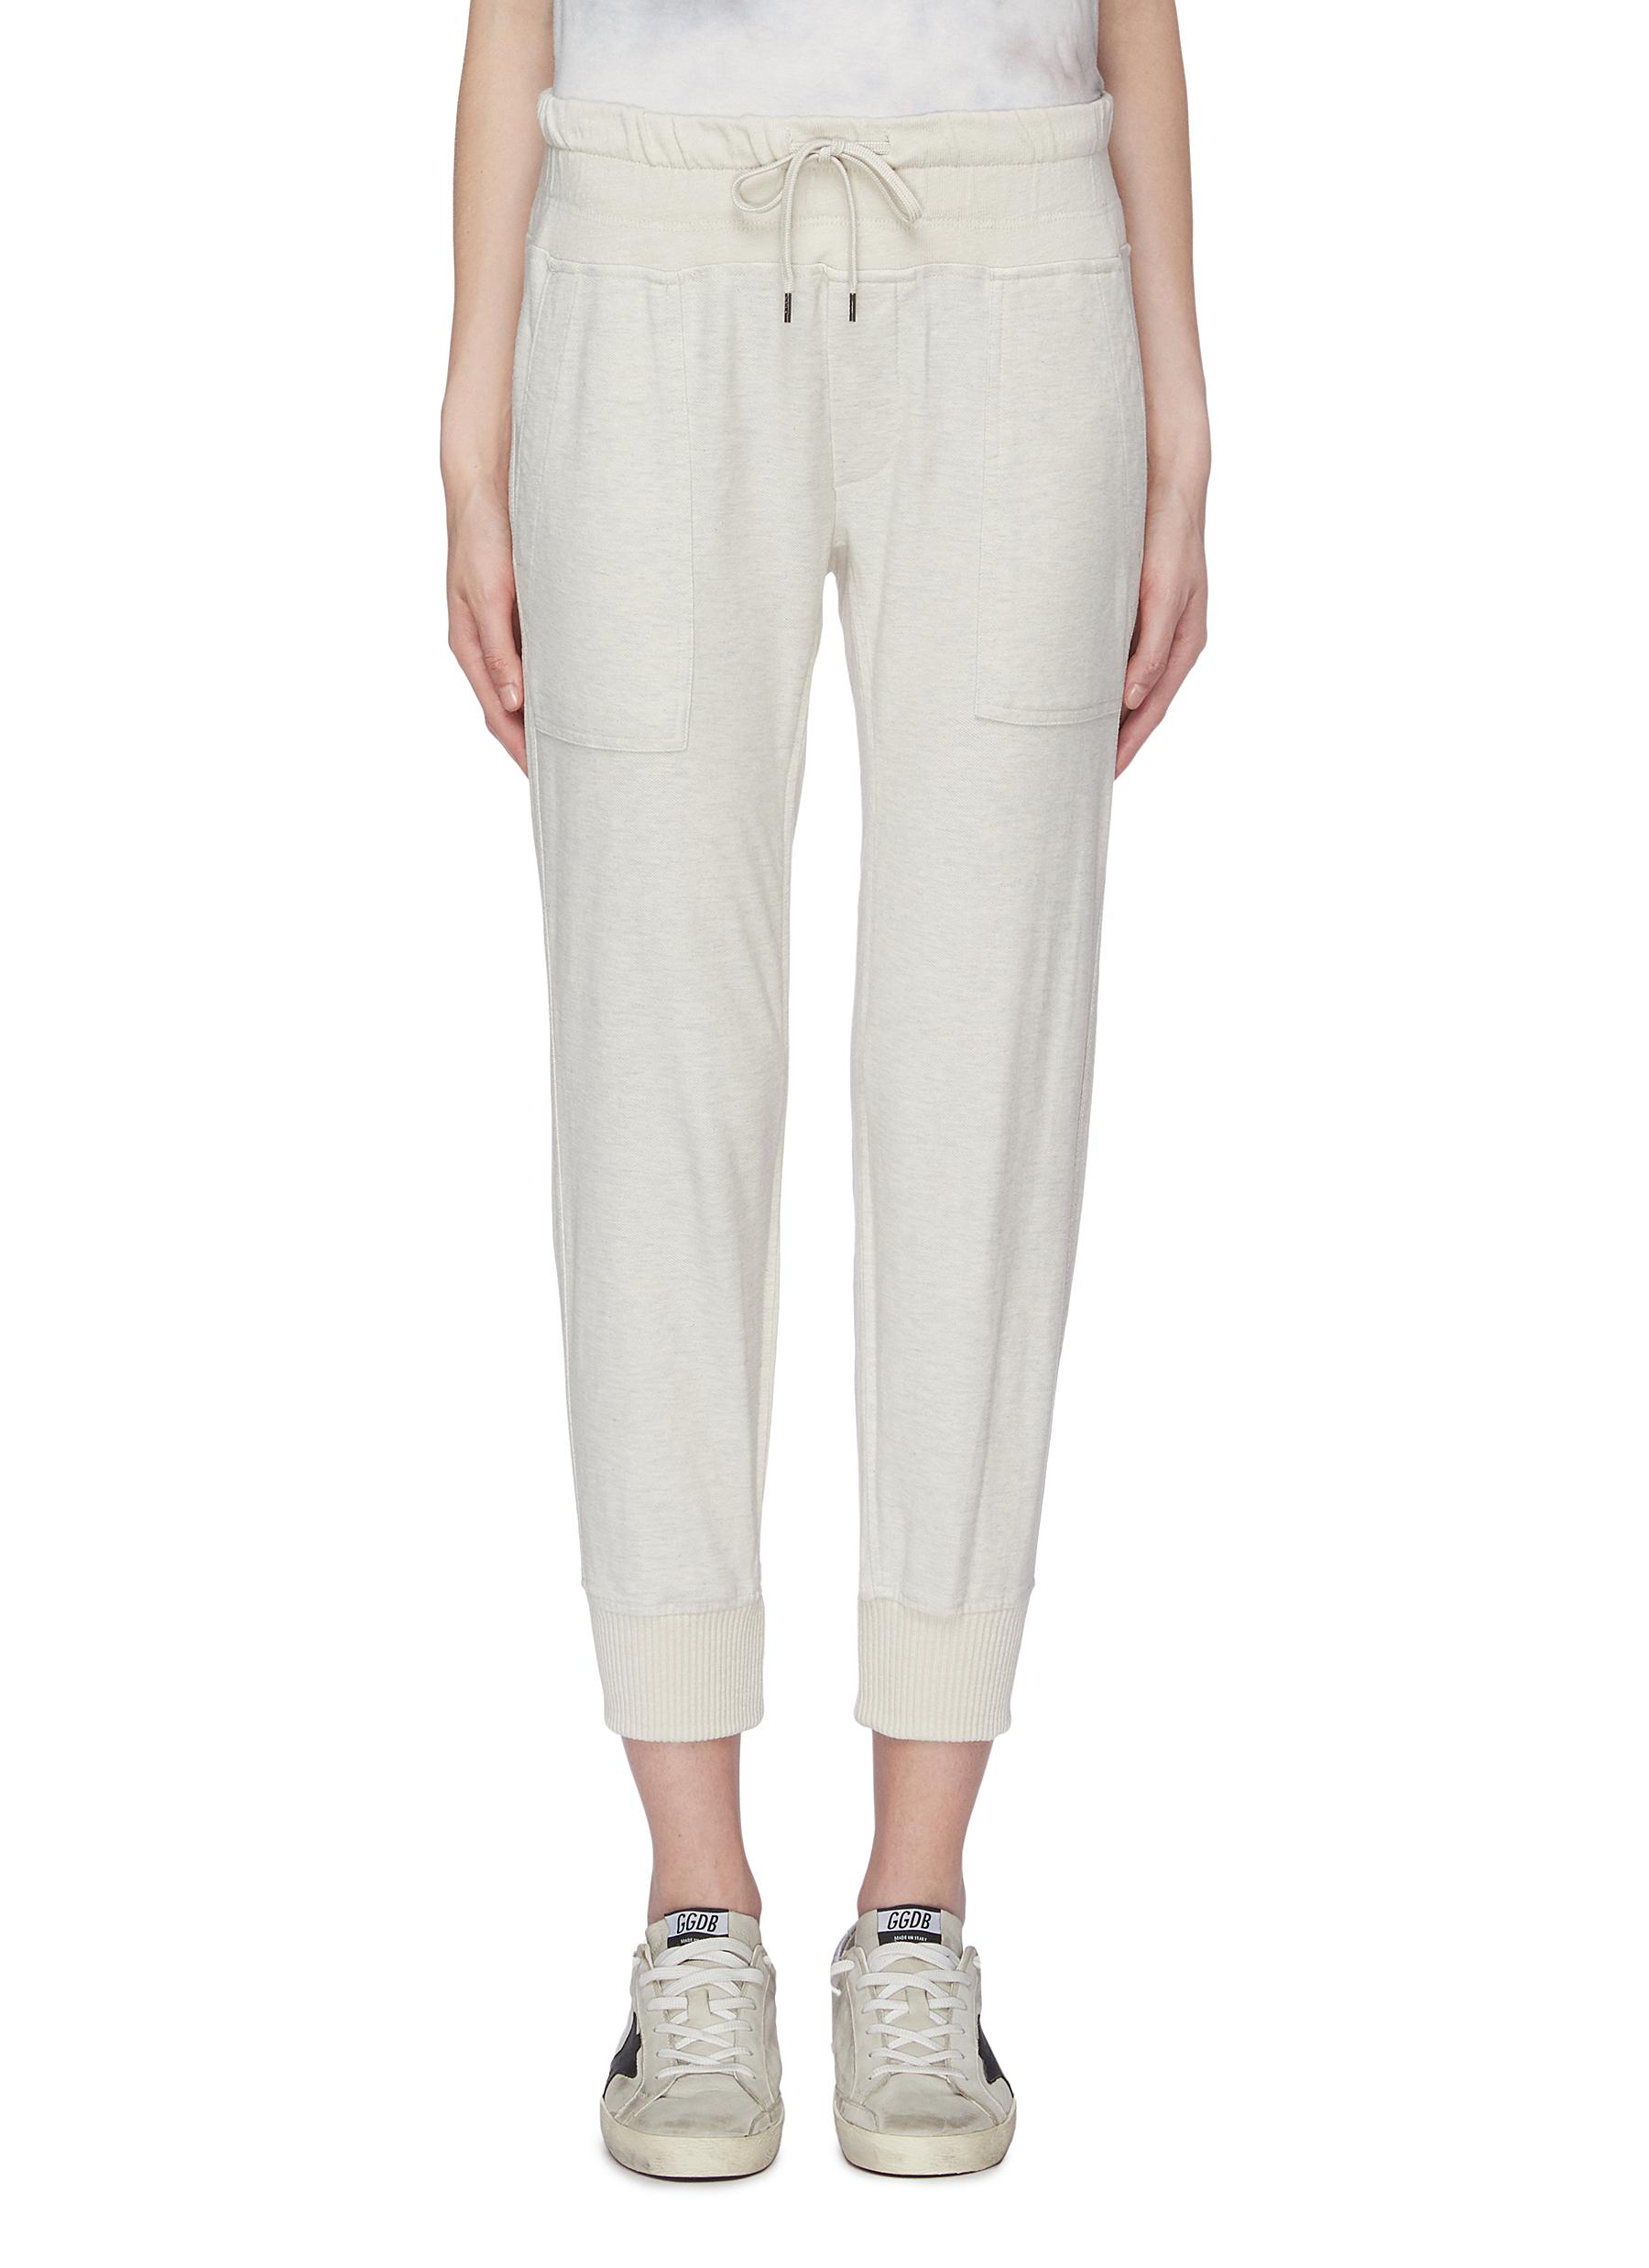 Patchwork sweatpants by James Perse